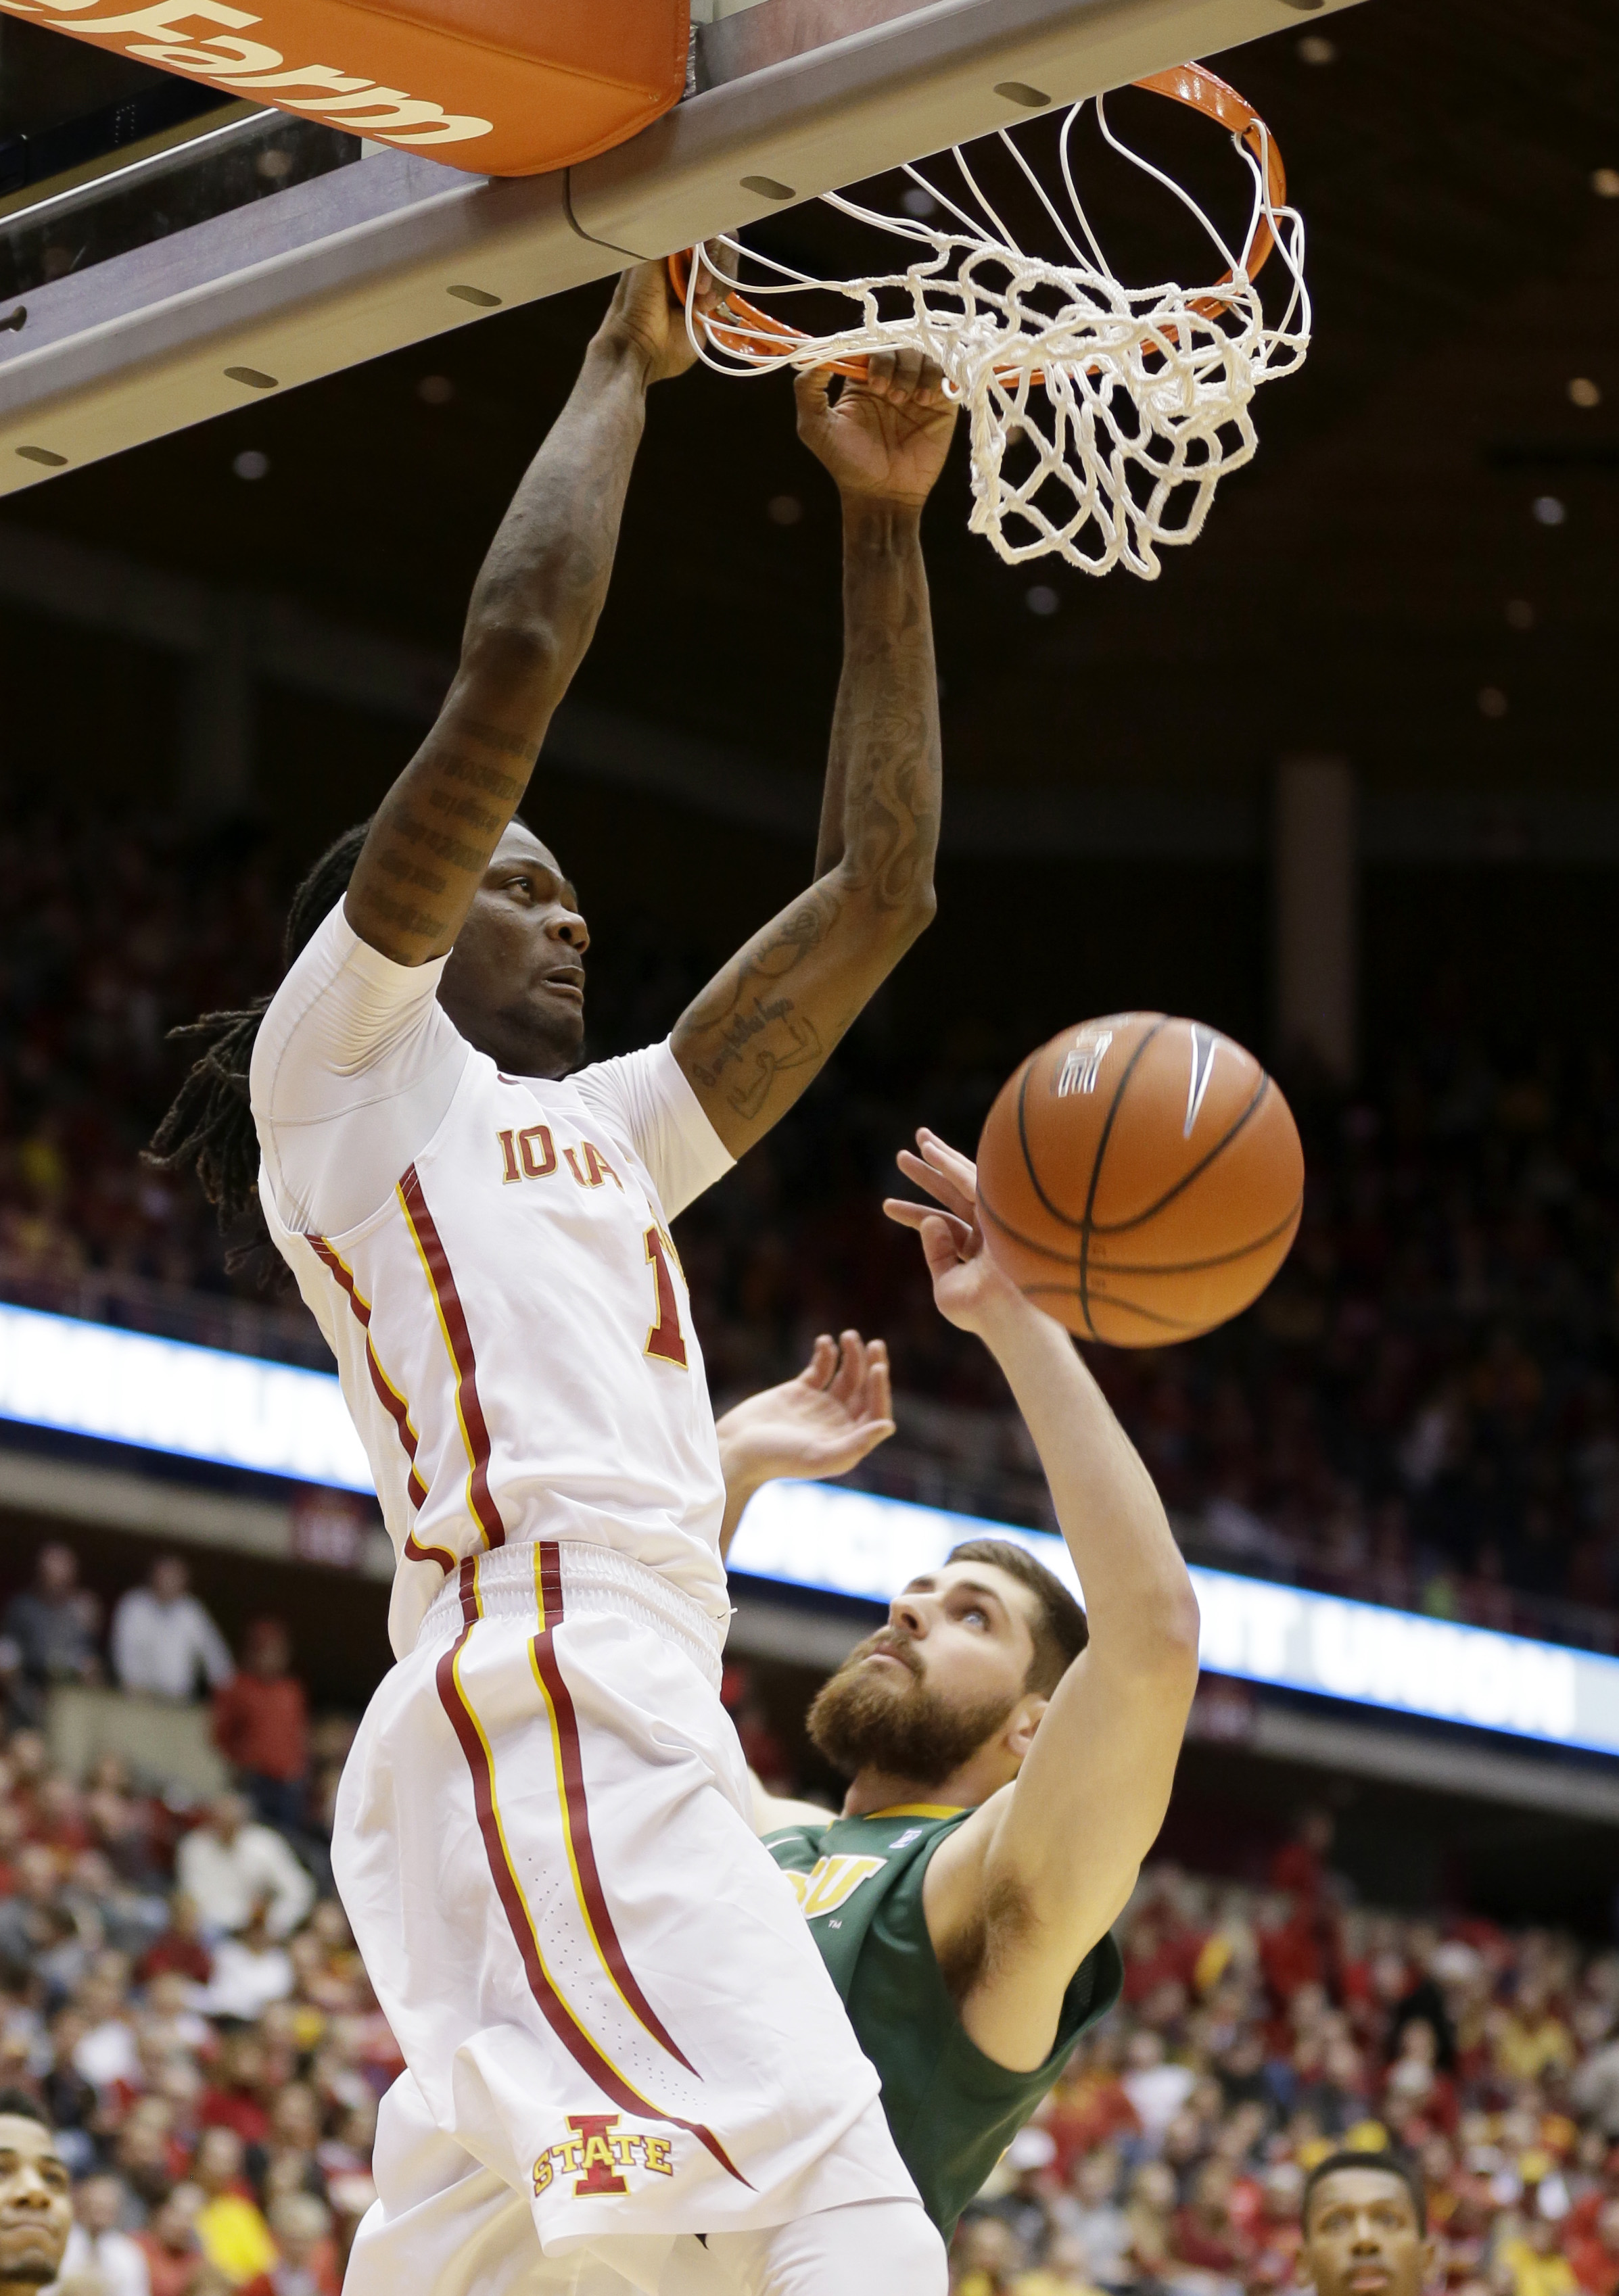 Iowa State forward Jameel McKay dunks the ball over North Dakota State forward Chris Kading, right, during the first half of an NCAA college basketball game, Tuesday, Dec. 1, 2015, in Ames, Iowa. (AP Photo/Charlie Neibergall)